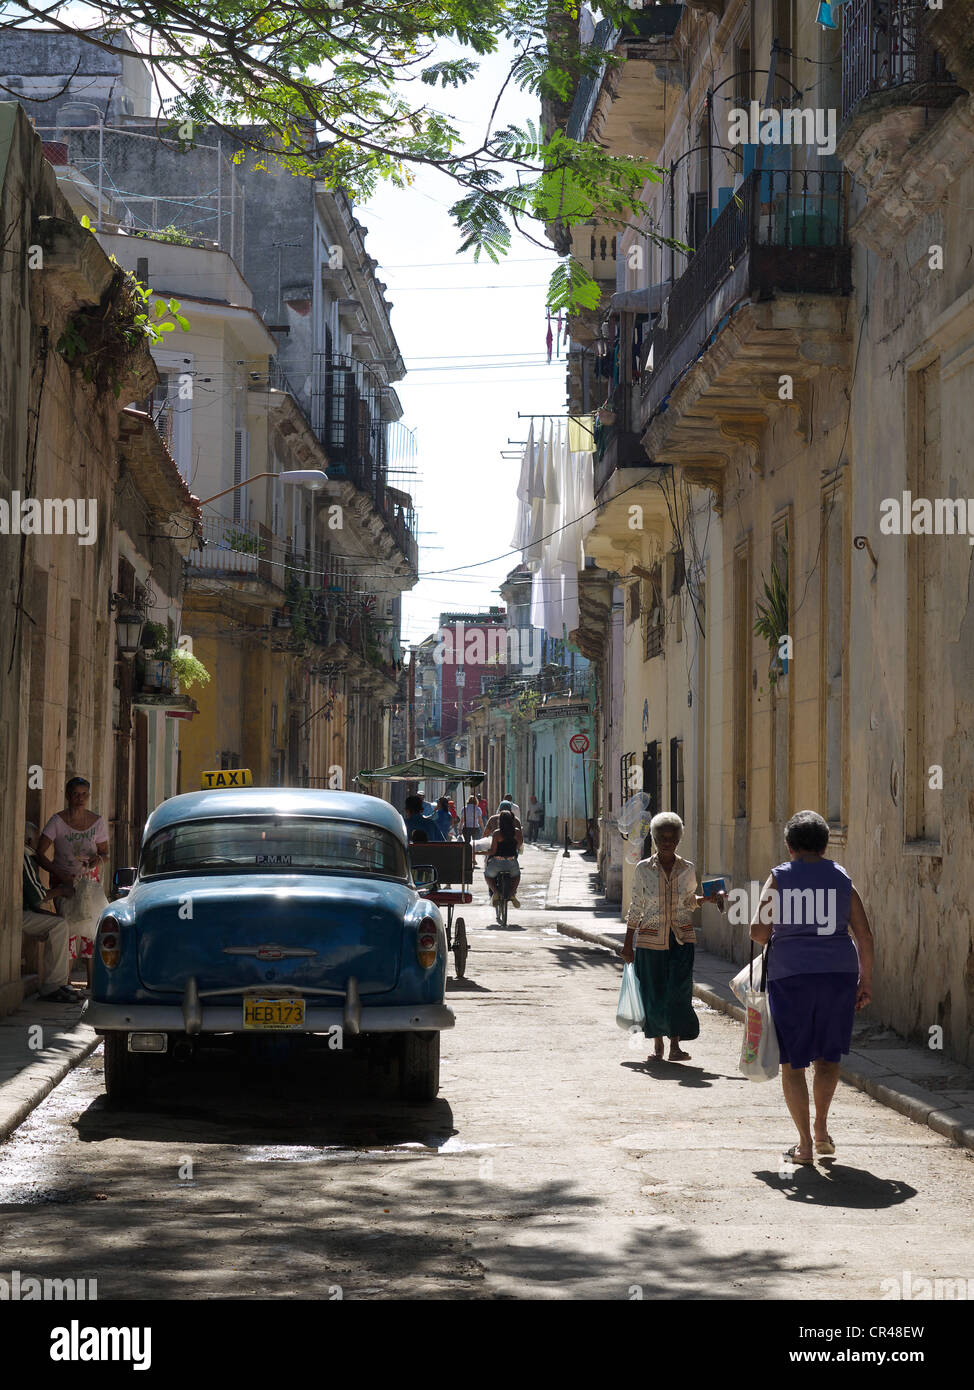 Street scene with vintage cars and passersby in Old Havana, Cuba, Latin America Stock Photo